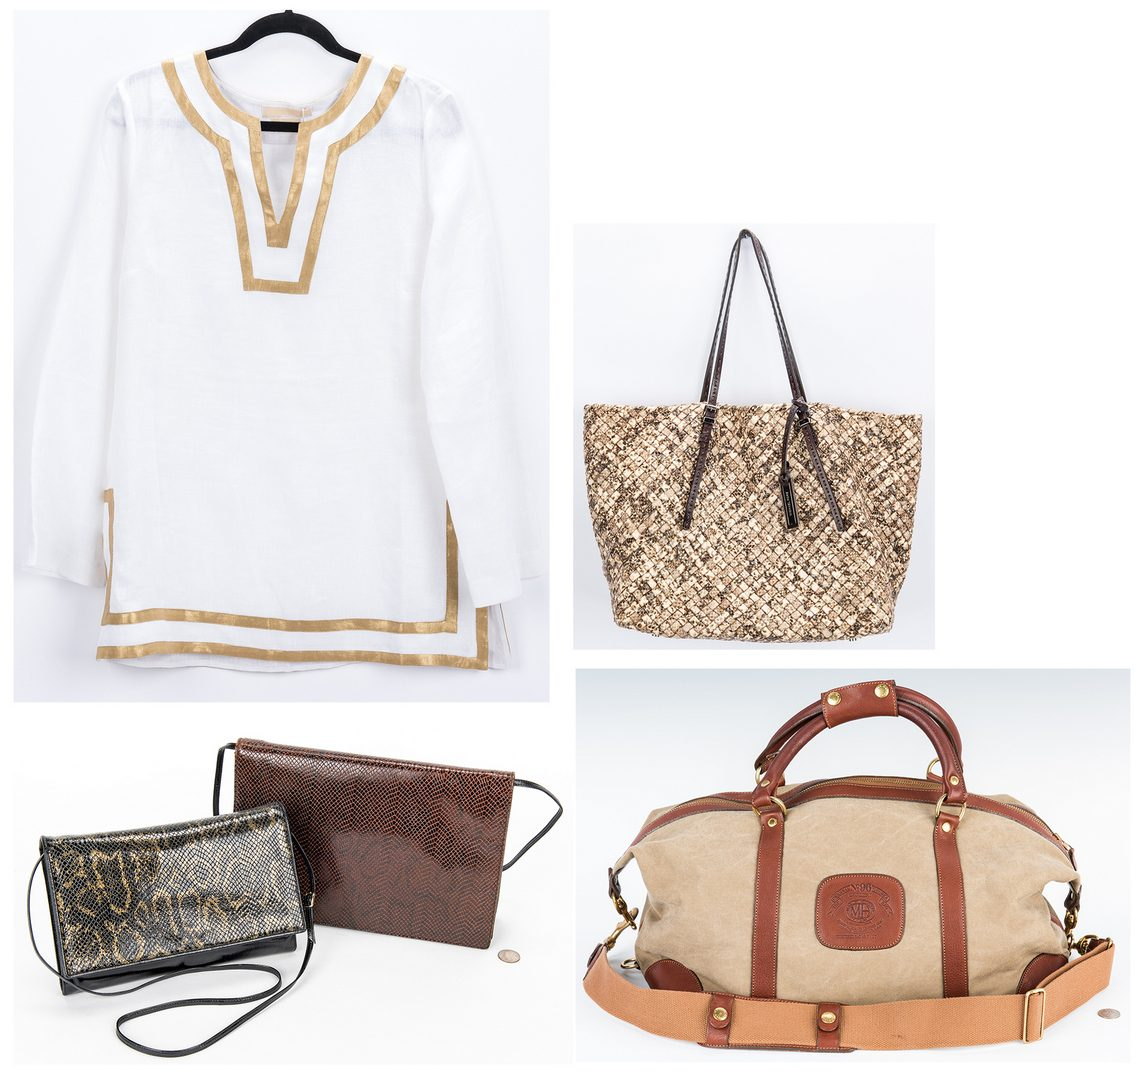 Lot 354: 5 Fashion Items, incl. Fendi, Michael Kors, Ghurka Duffel